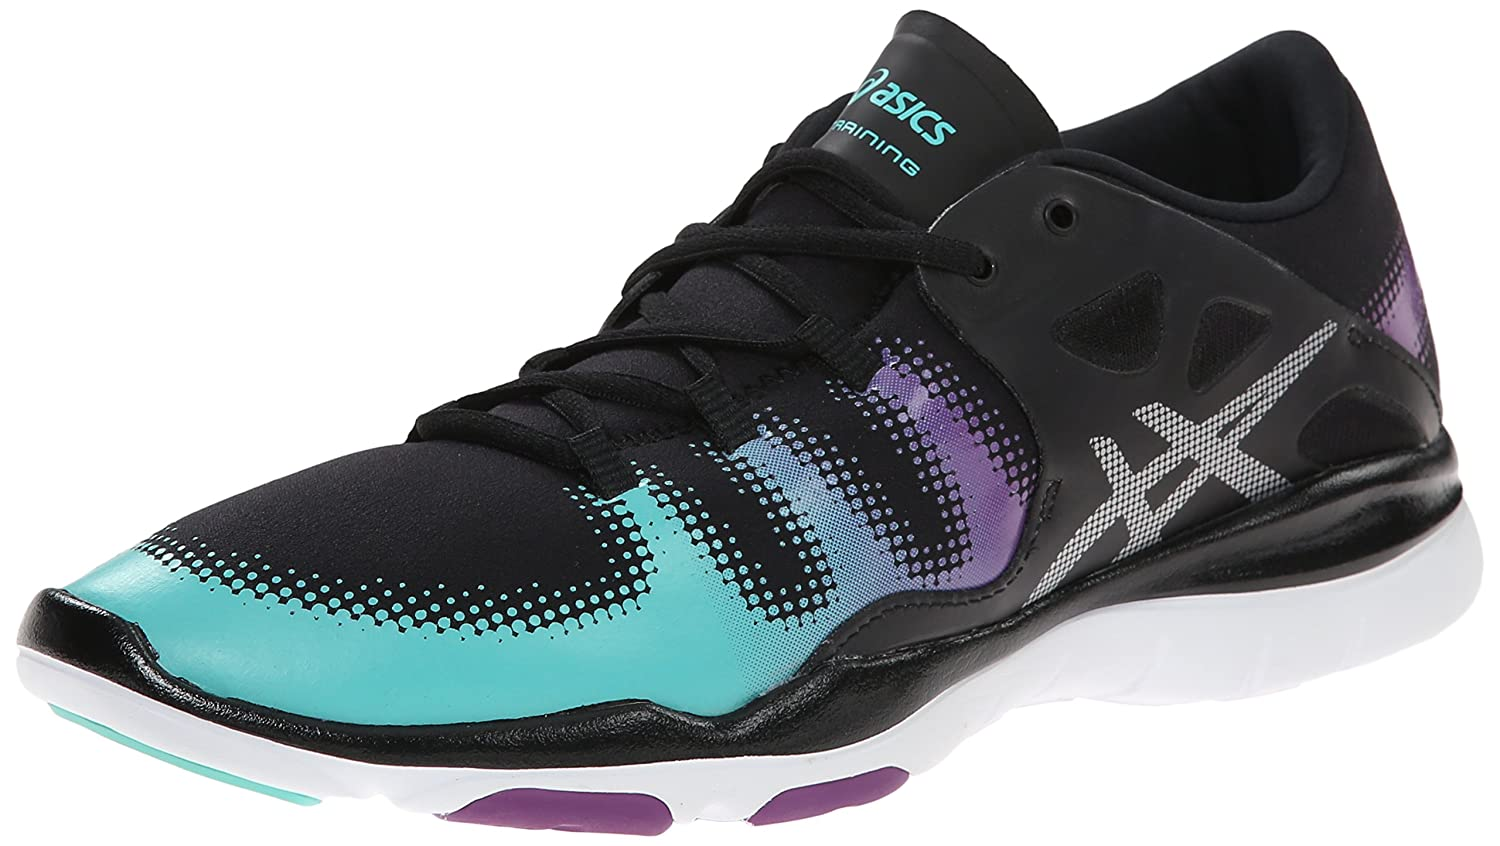 ASICS Women's GEL Fit Vida Fitness Shoe B00Q2KVWBI 6 B(M) US|Black/Silver/Aqua Mint